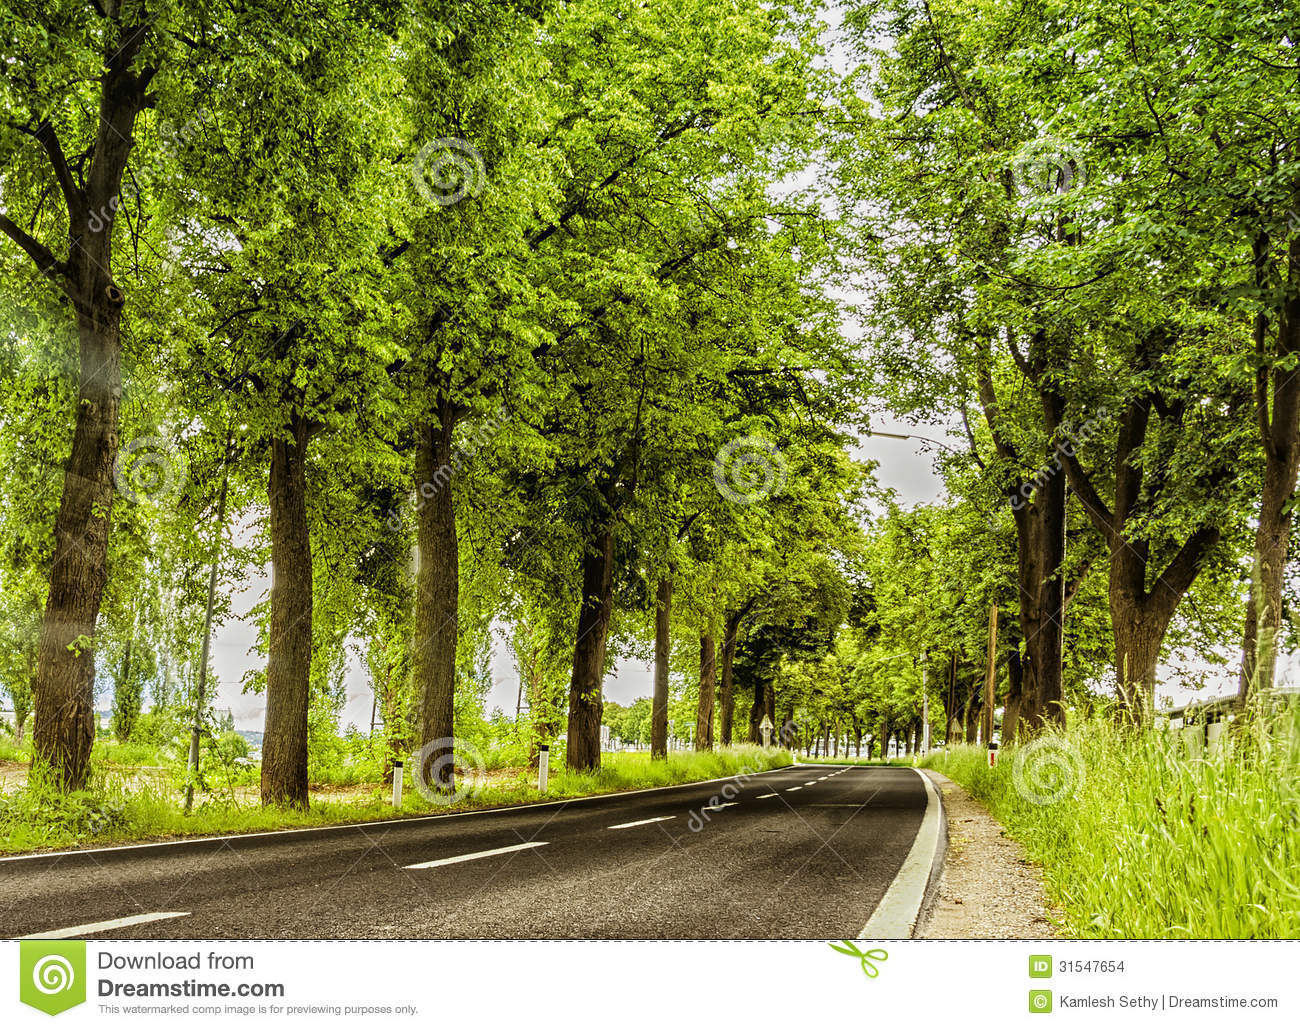 turning Road with green trees on both sides.